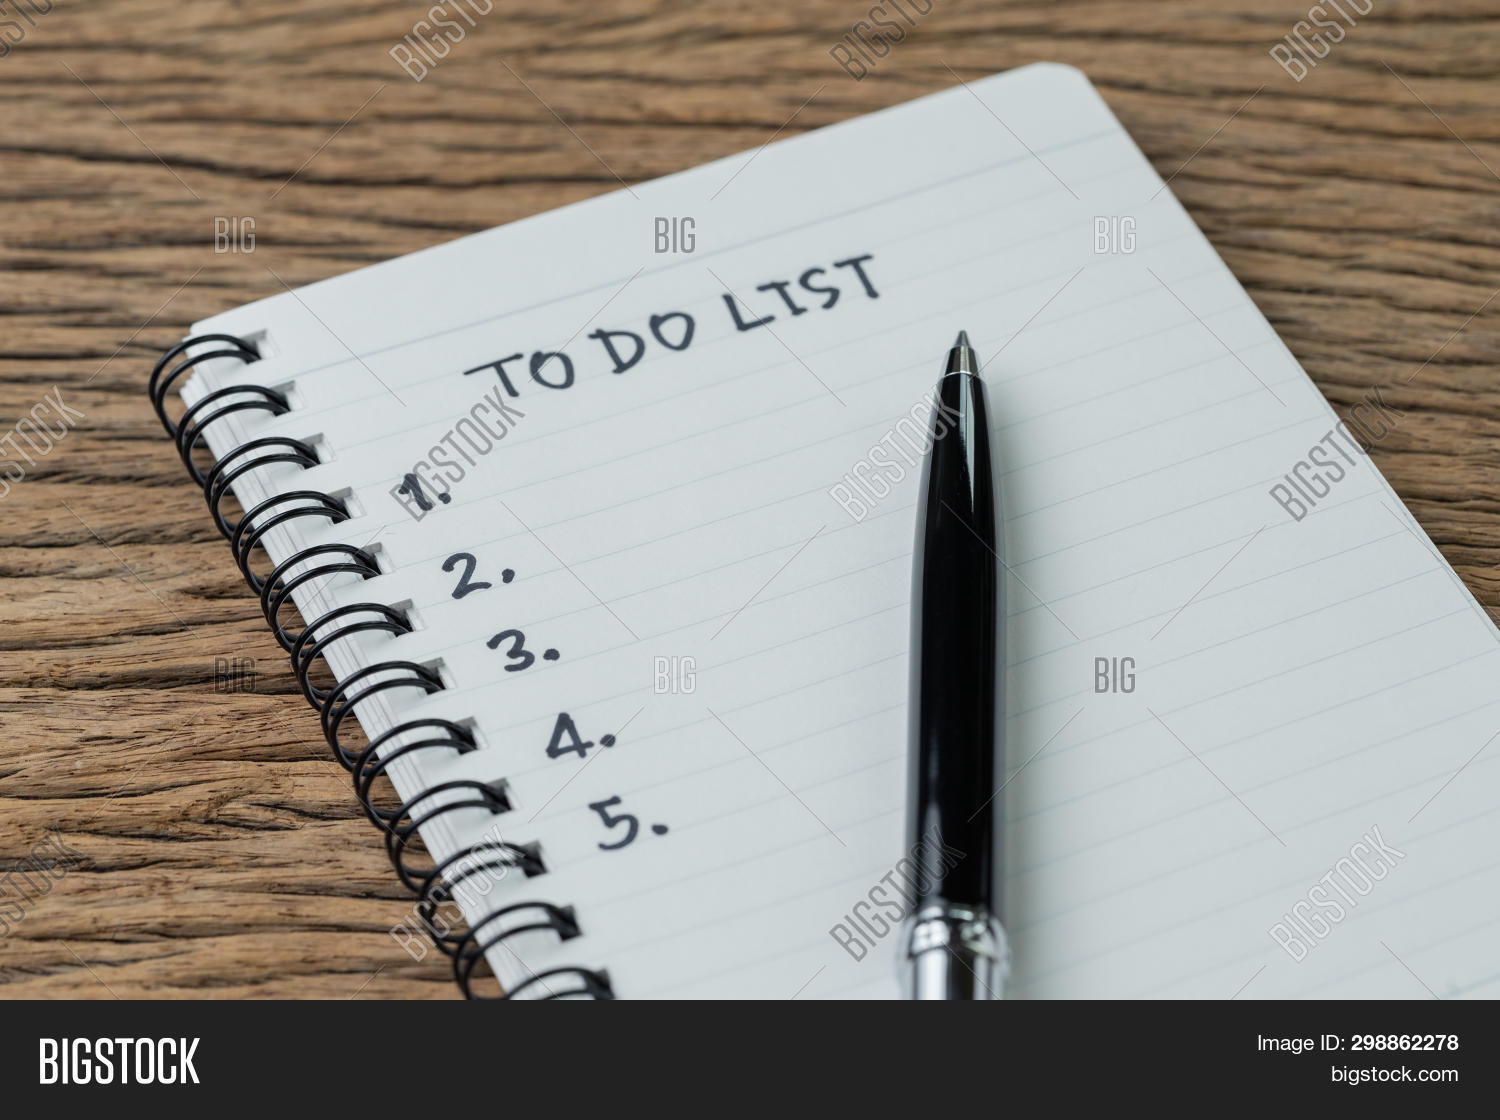 To Do List, Checklist Of Things Or Tasks To Complete For Life Habit, Business Project Plan Concept,